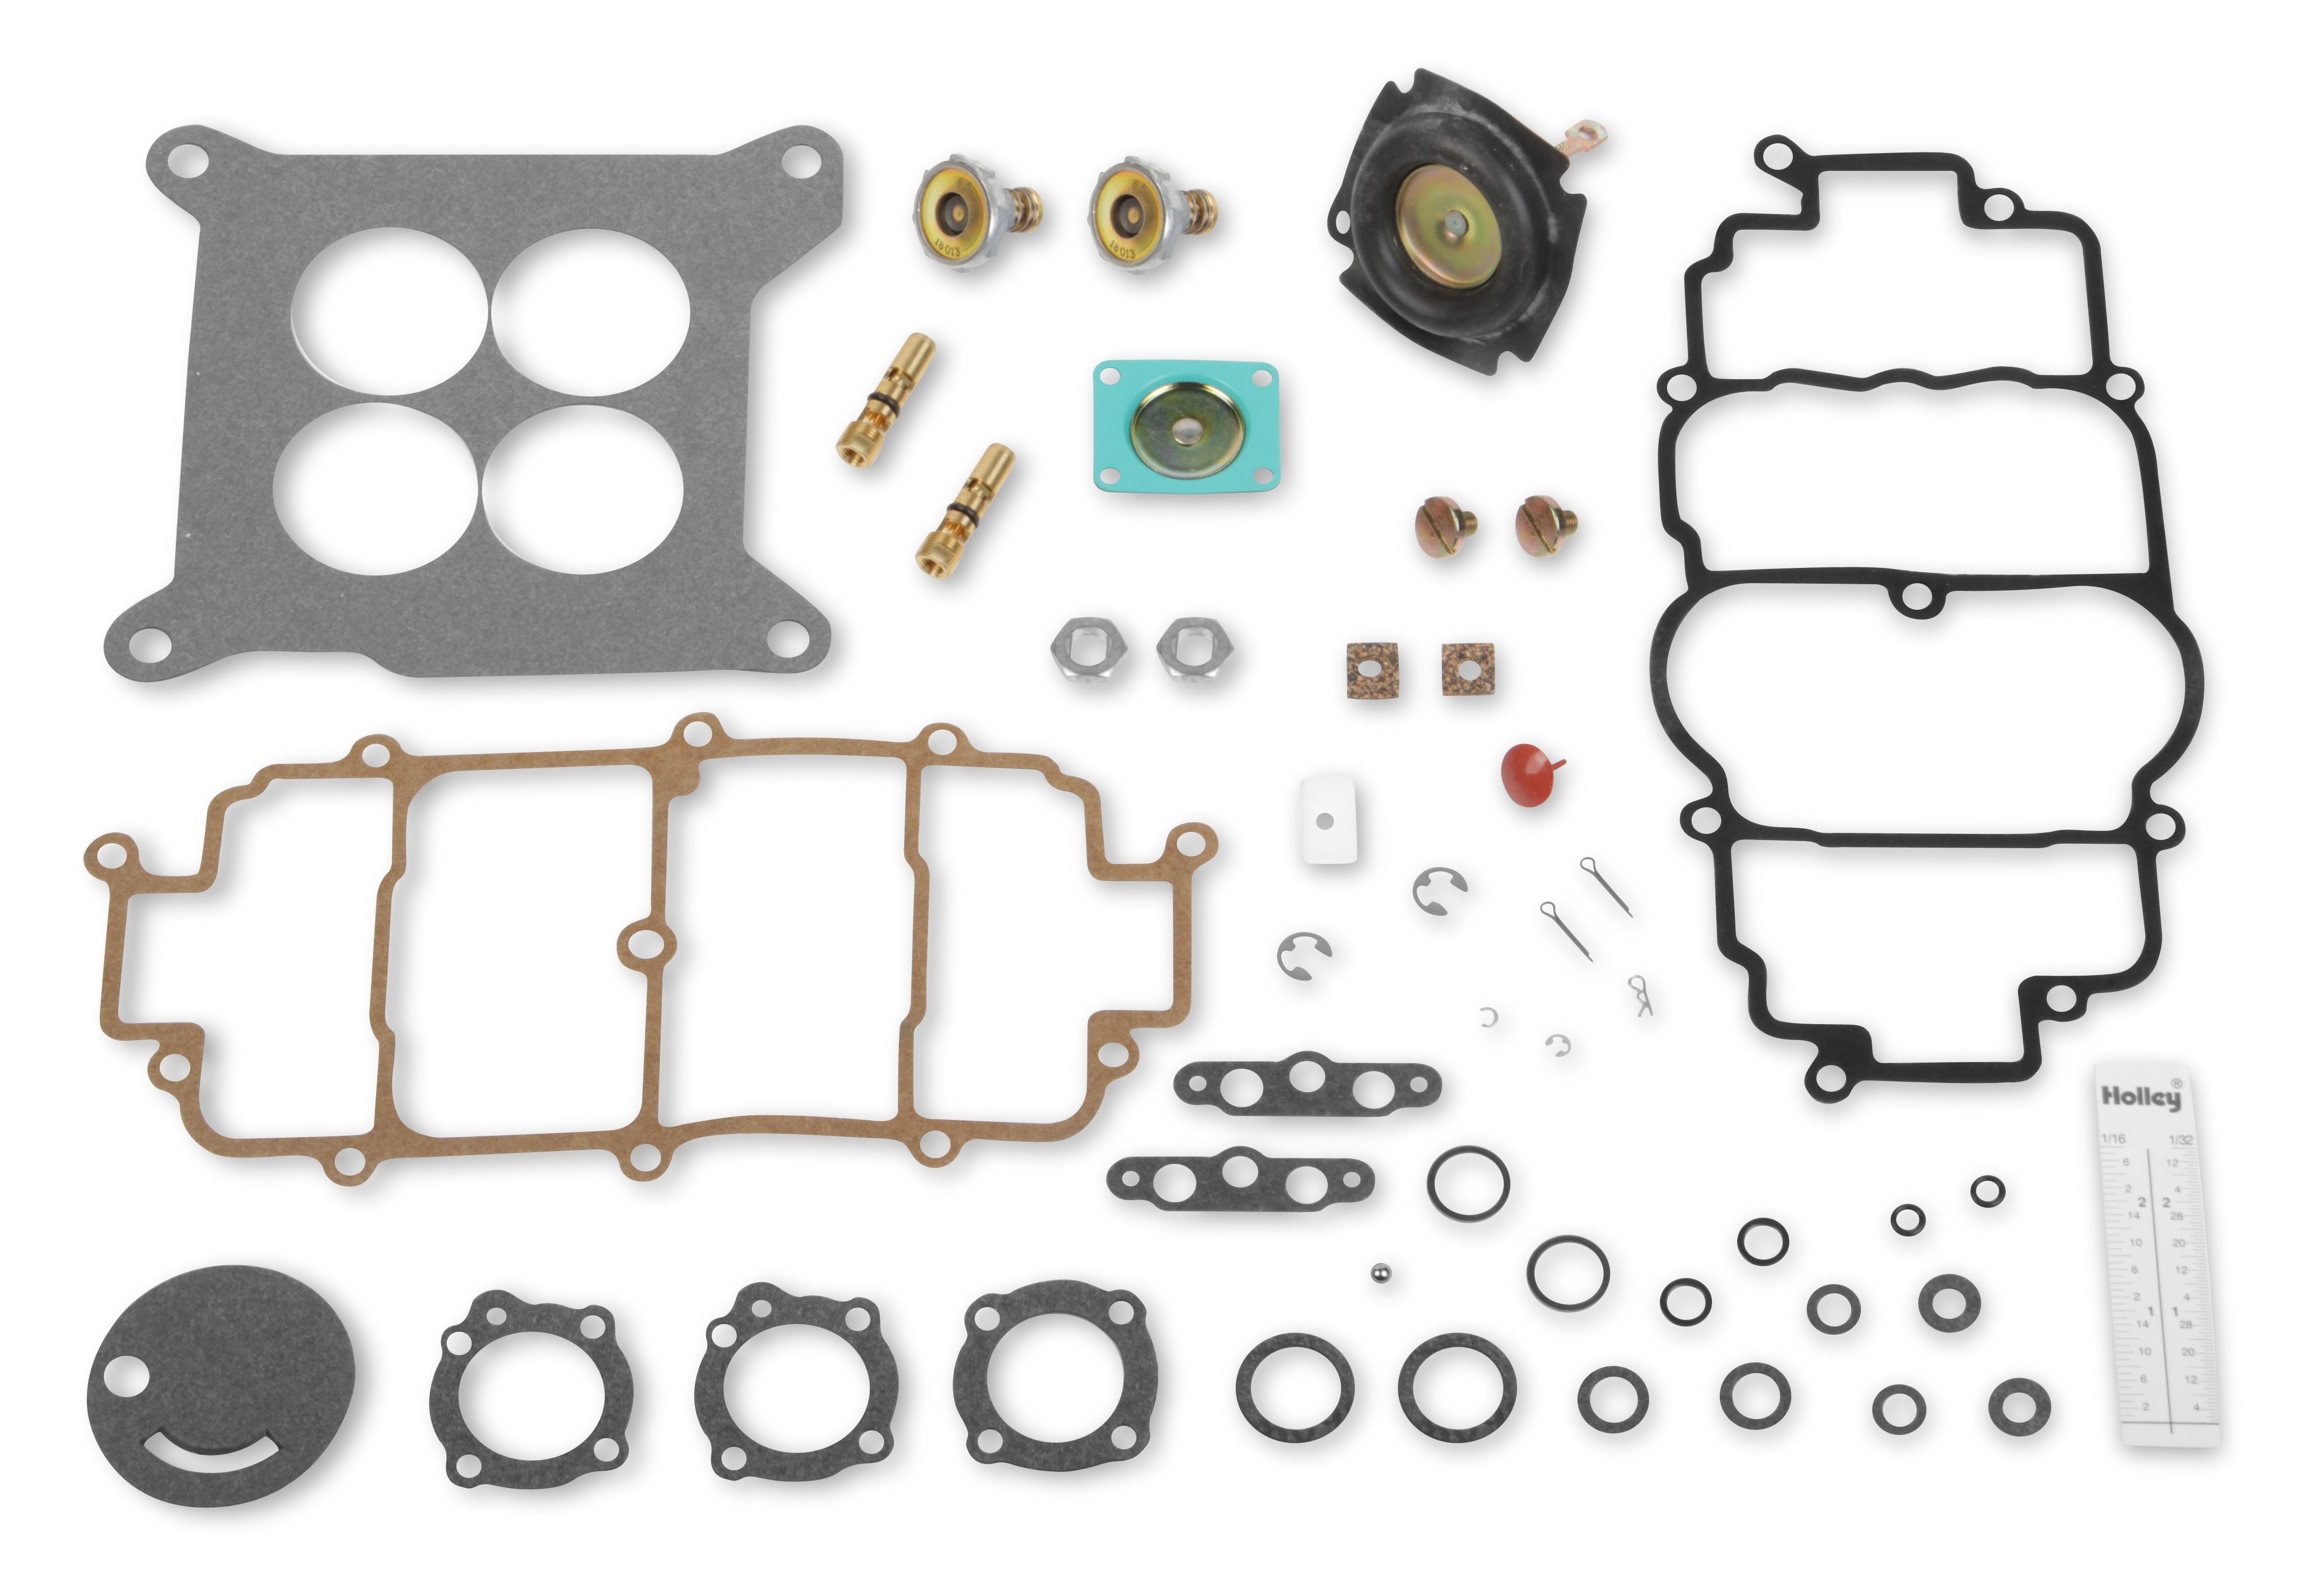 Holley 703 53 Marine Carb Renew Kit Swap Wiring Harness Image